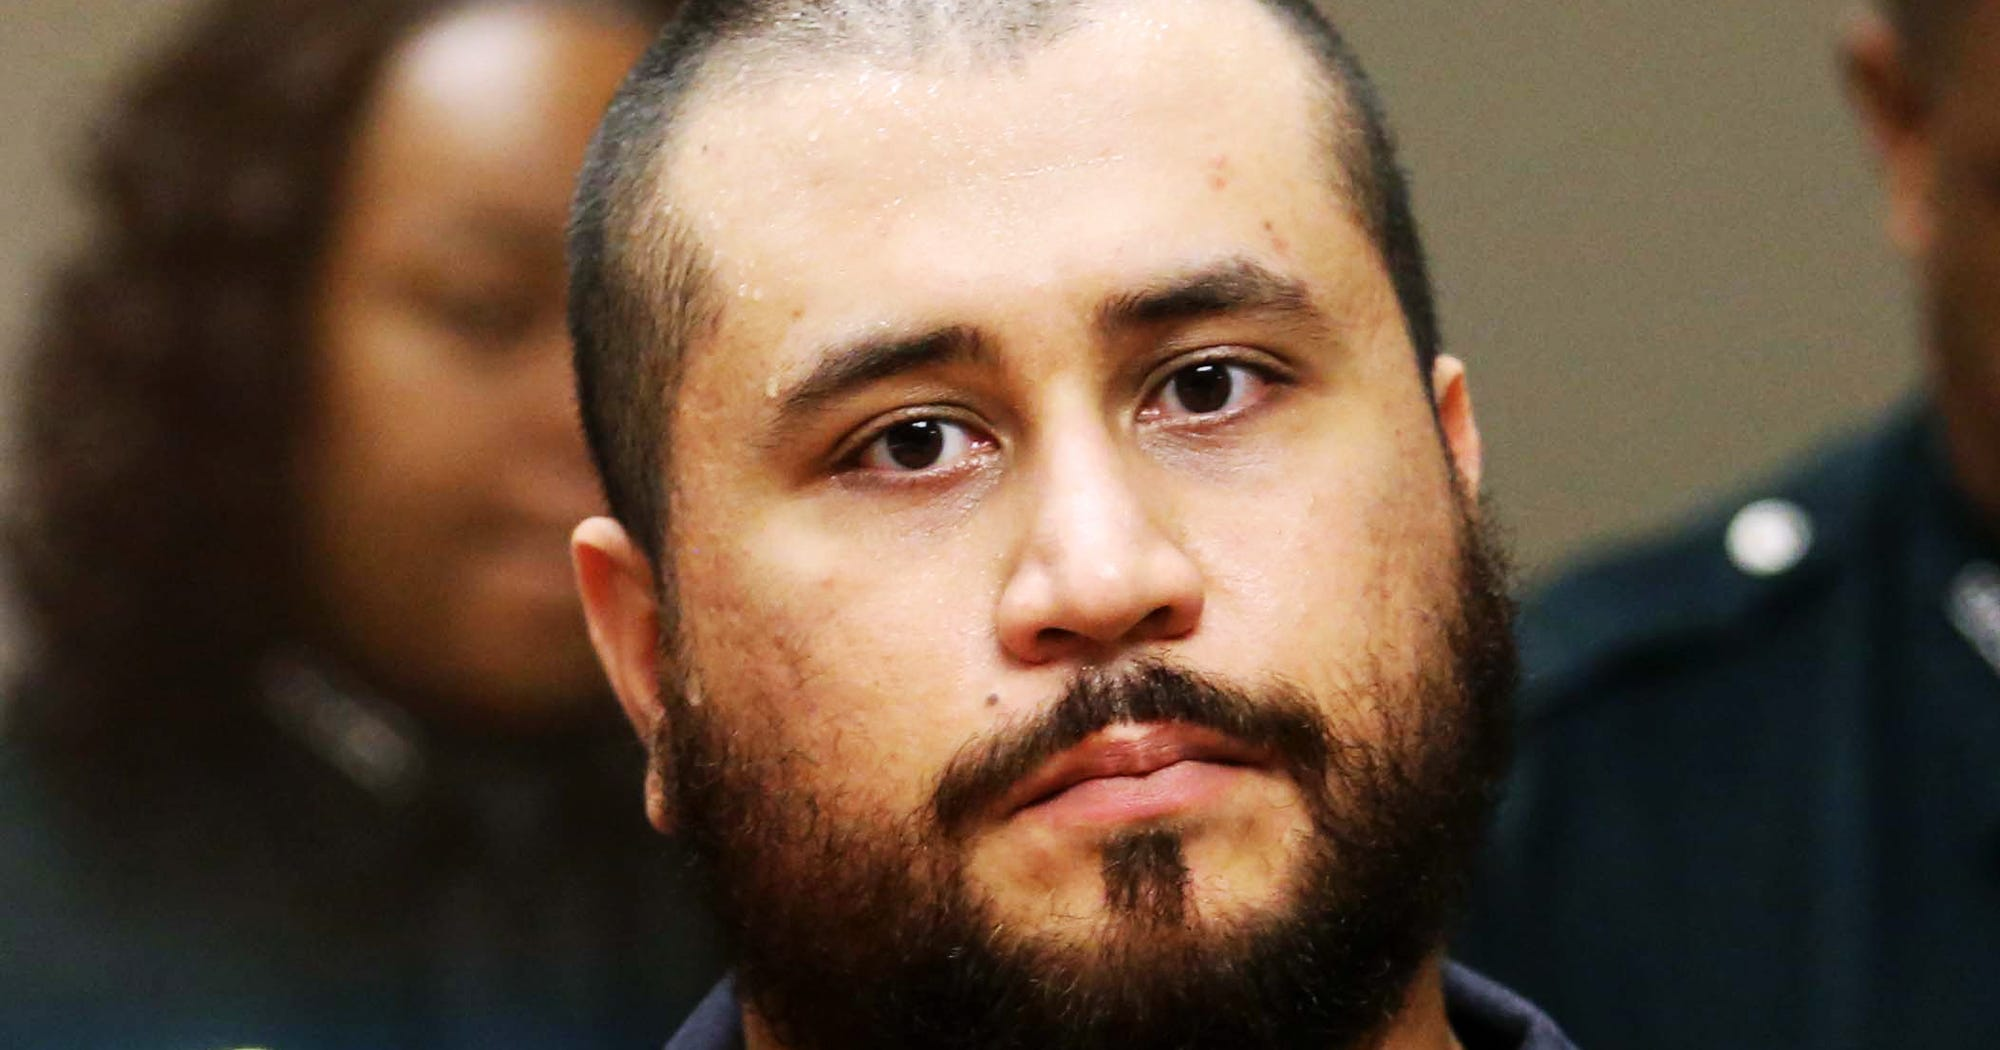 George Zimmermans Ex Reacts to Him Posting Naked Pic of